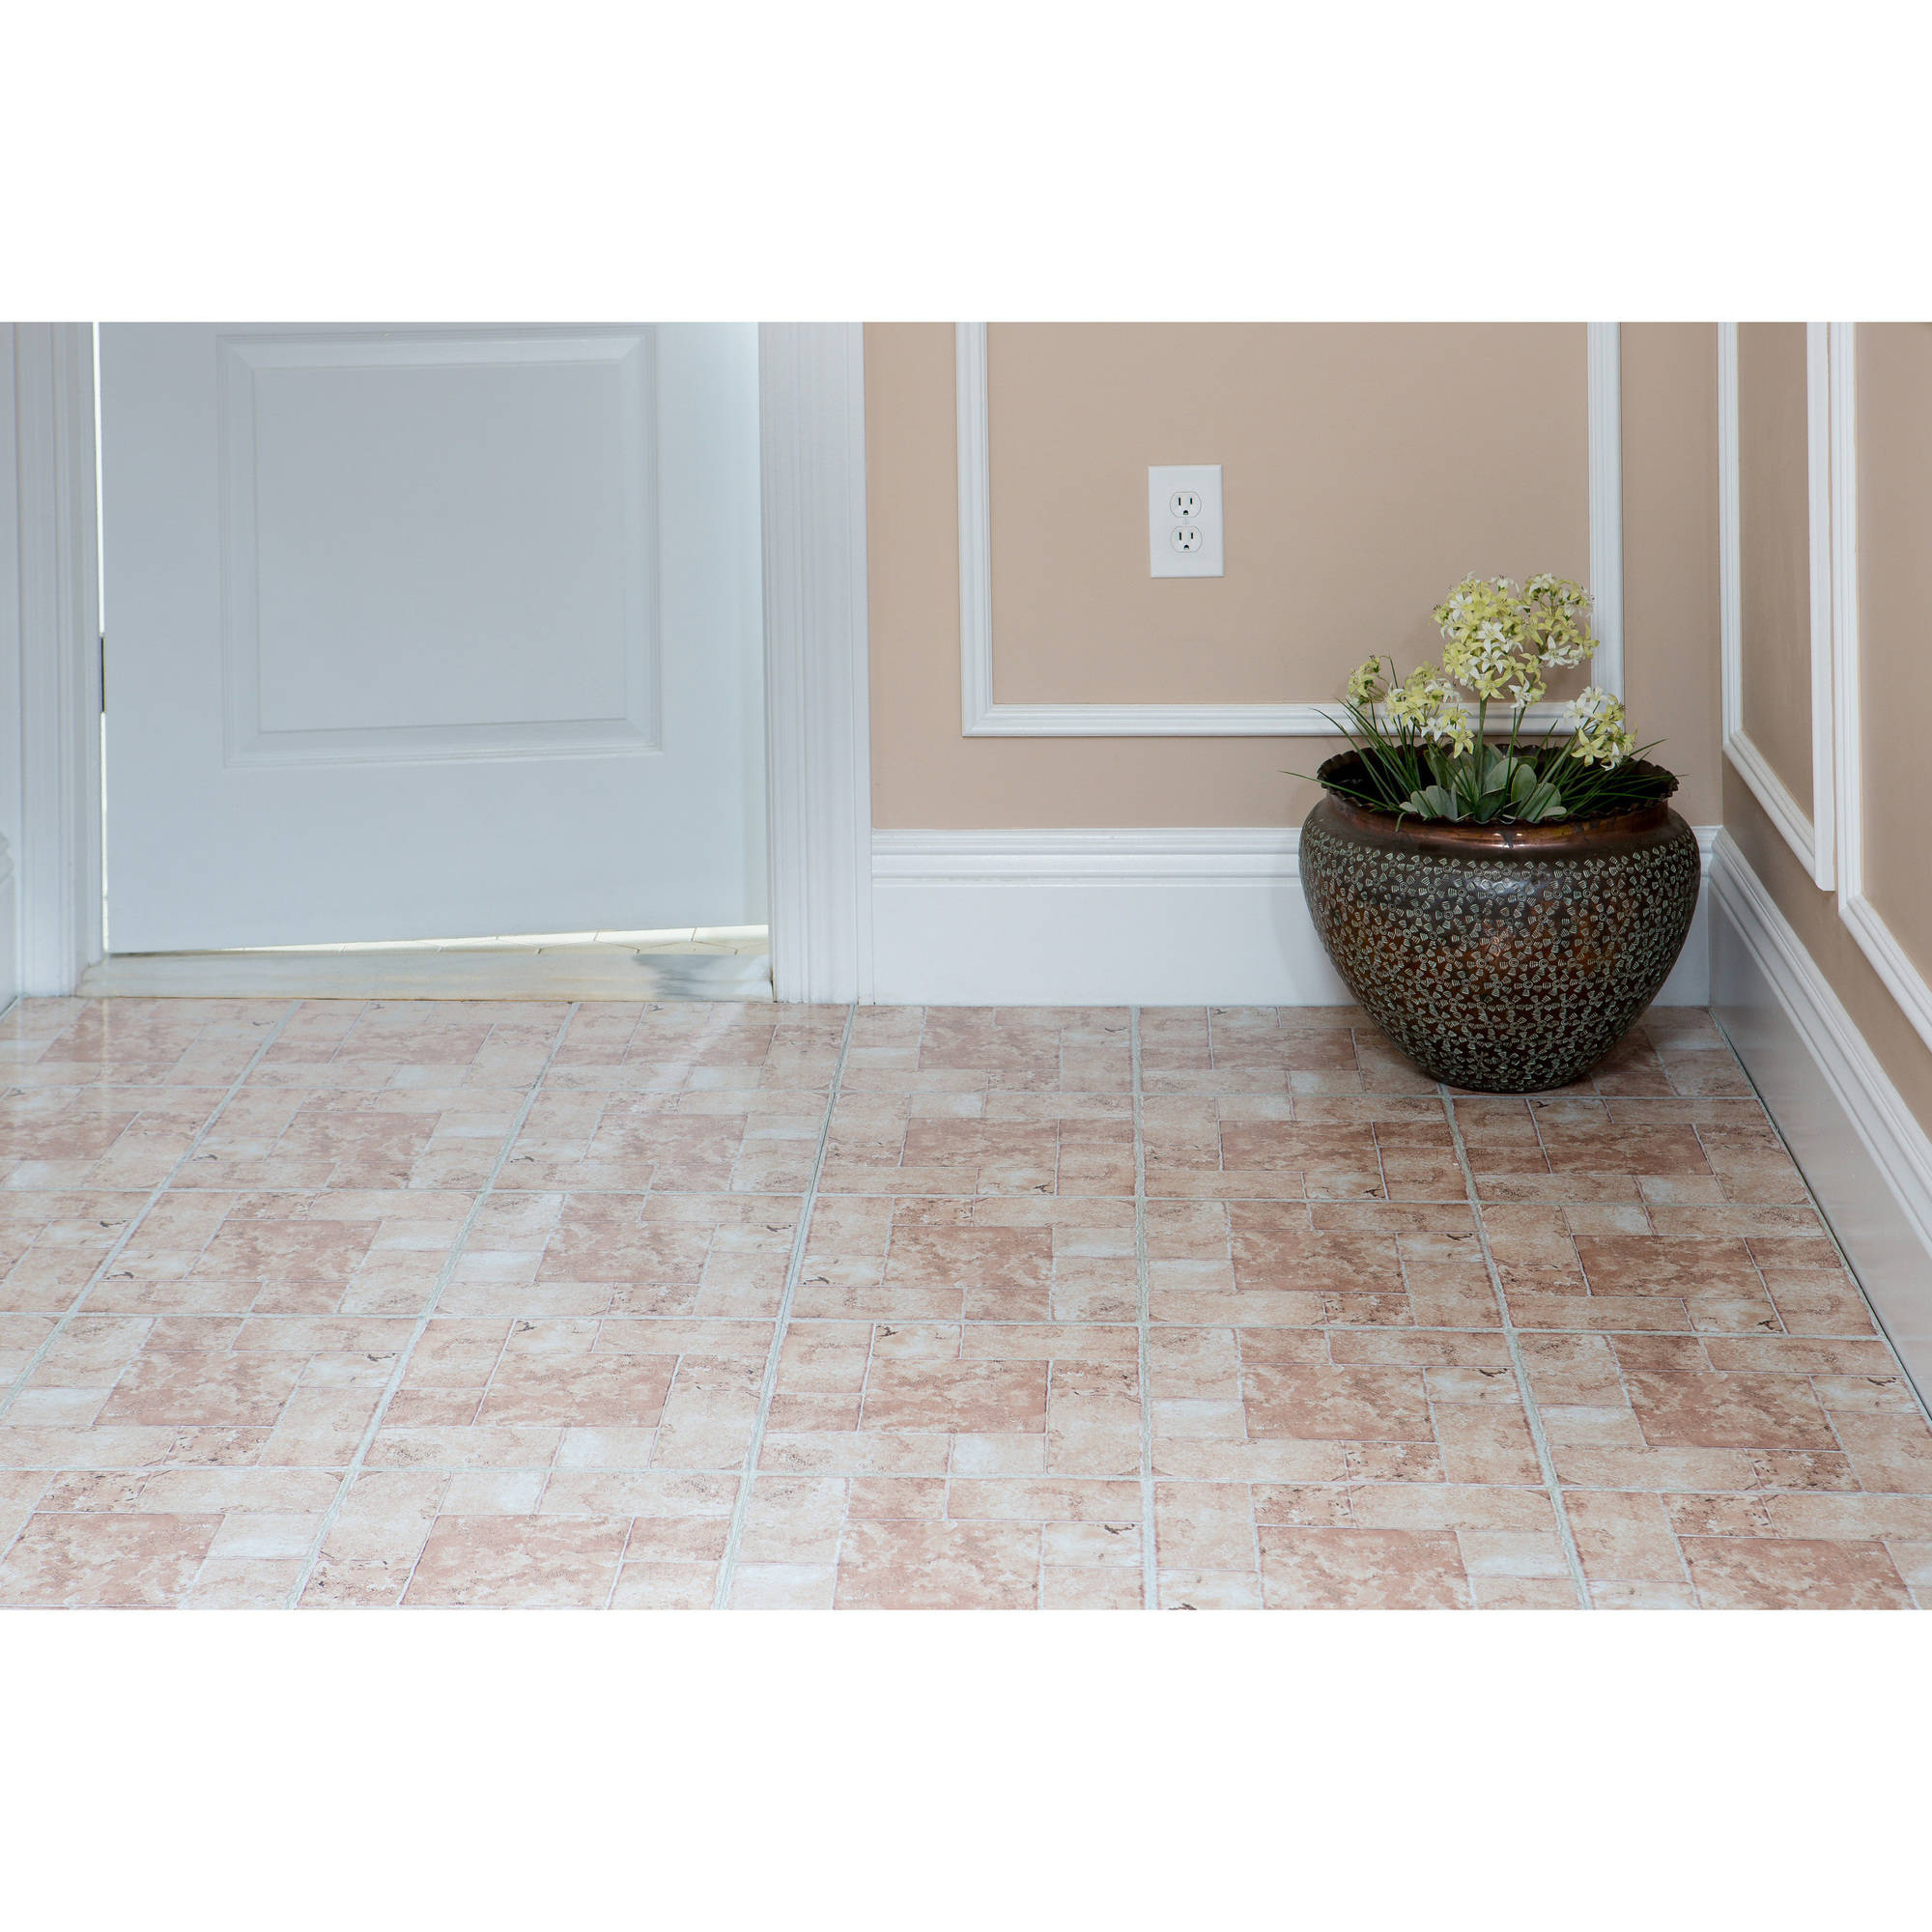 Achim Nexus Beige Terracotta 12x12 Self Adhesive Vinyl Floor Tile 20 Tiles 20 Sq Ft